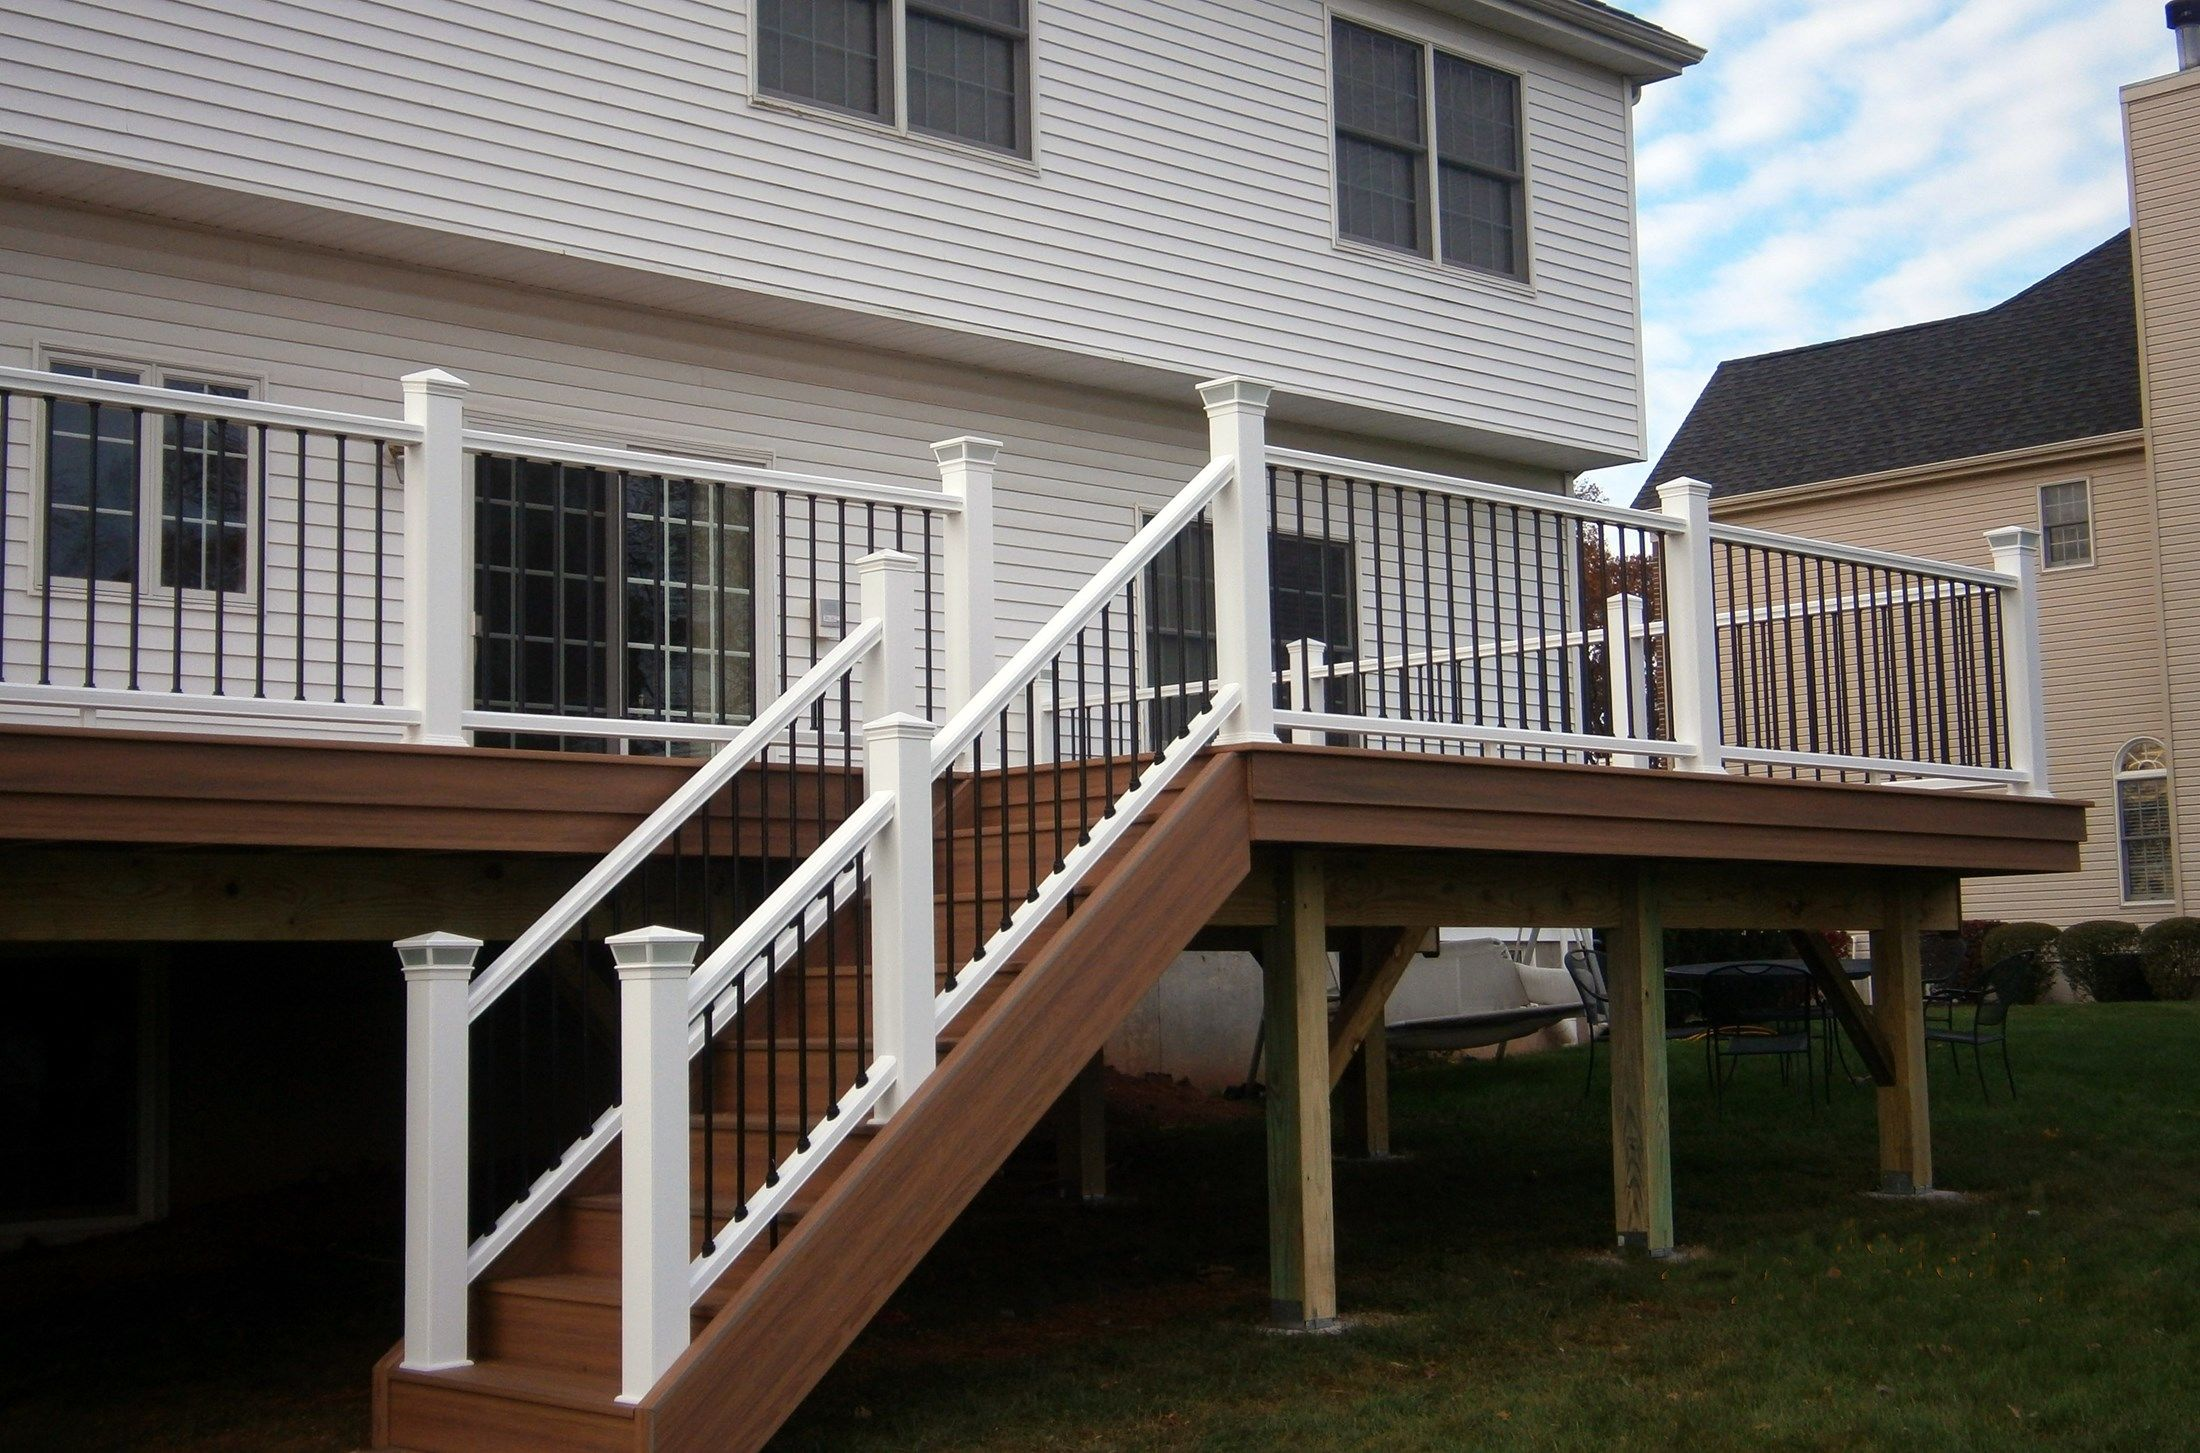 2015 Deck Work - Picture 3105